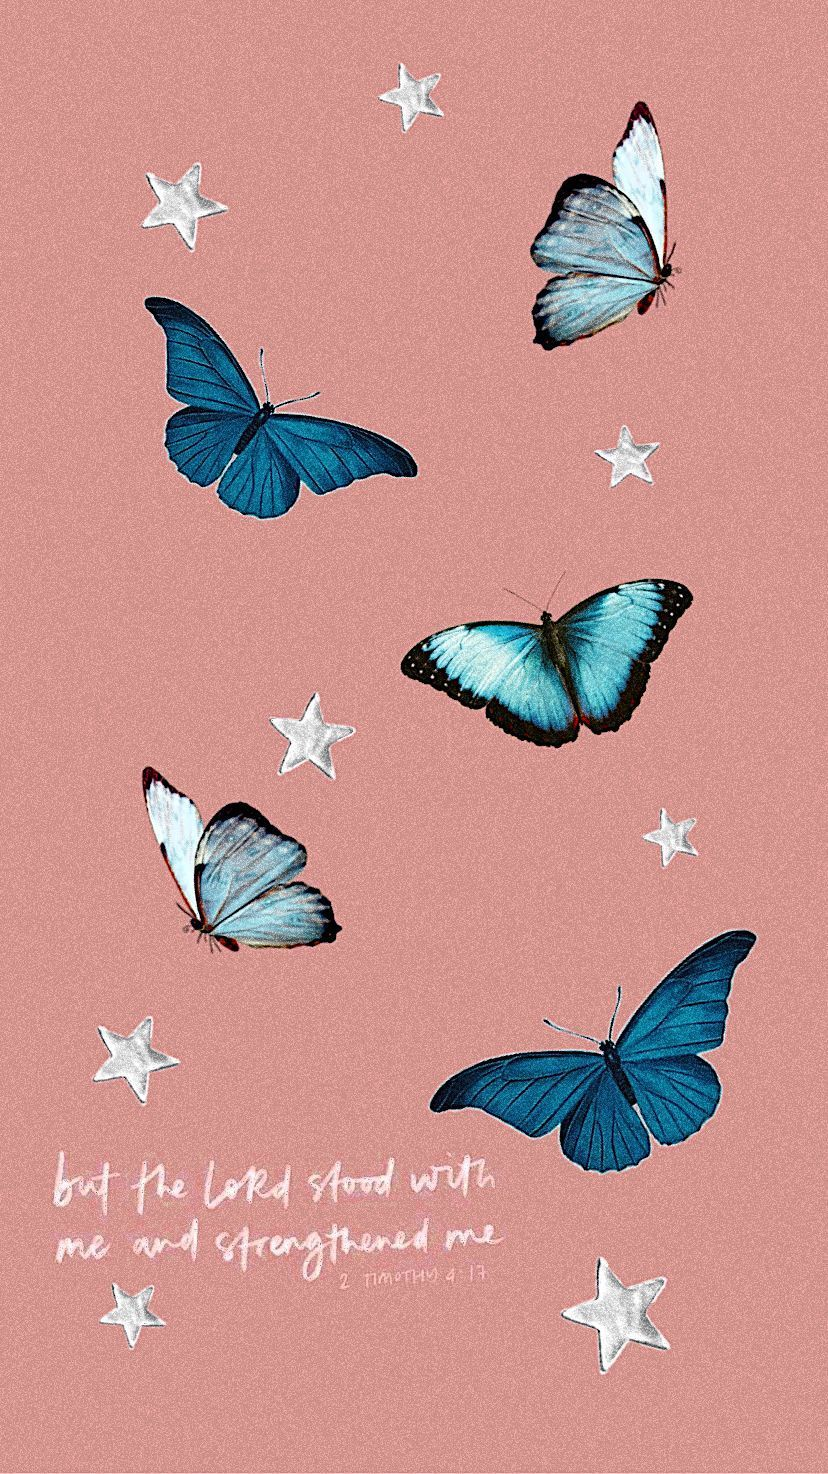 Christian Wallpaper in 2020 Butterfly wallpaper iphone